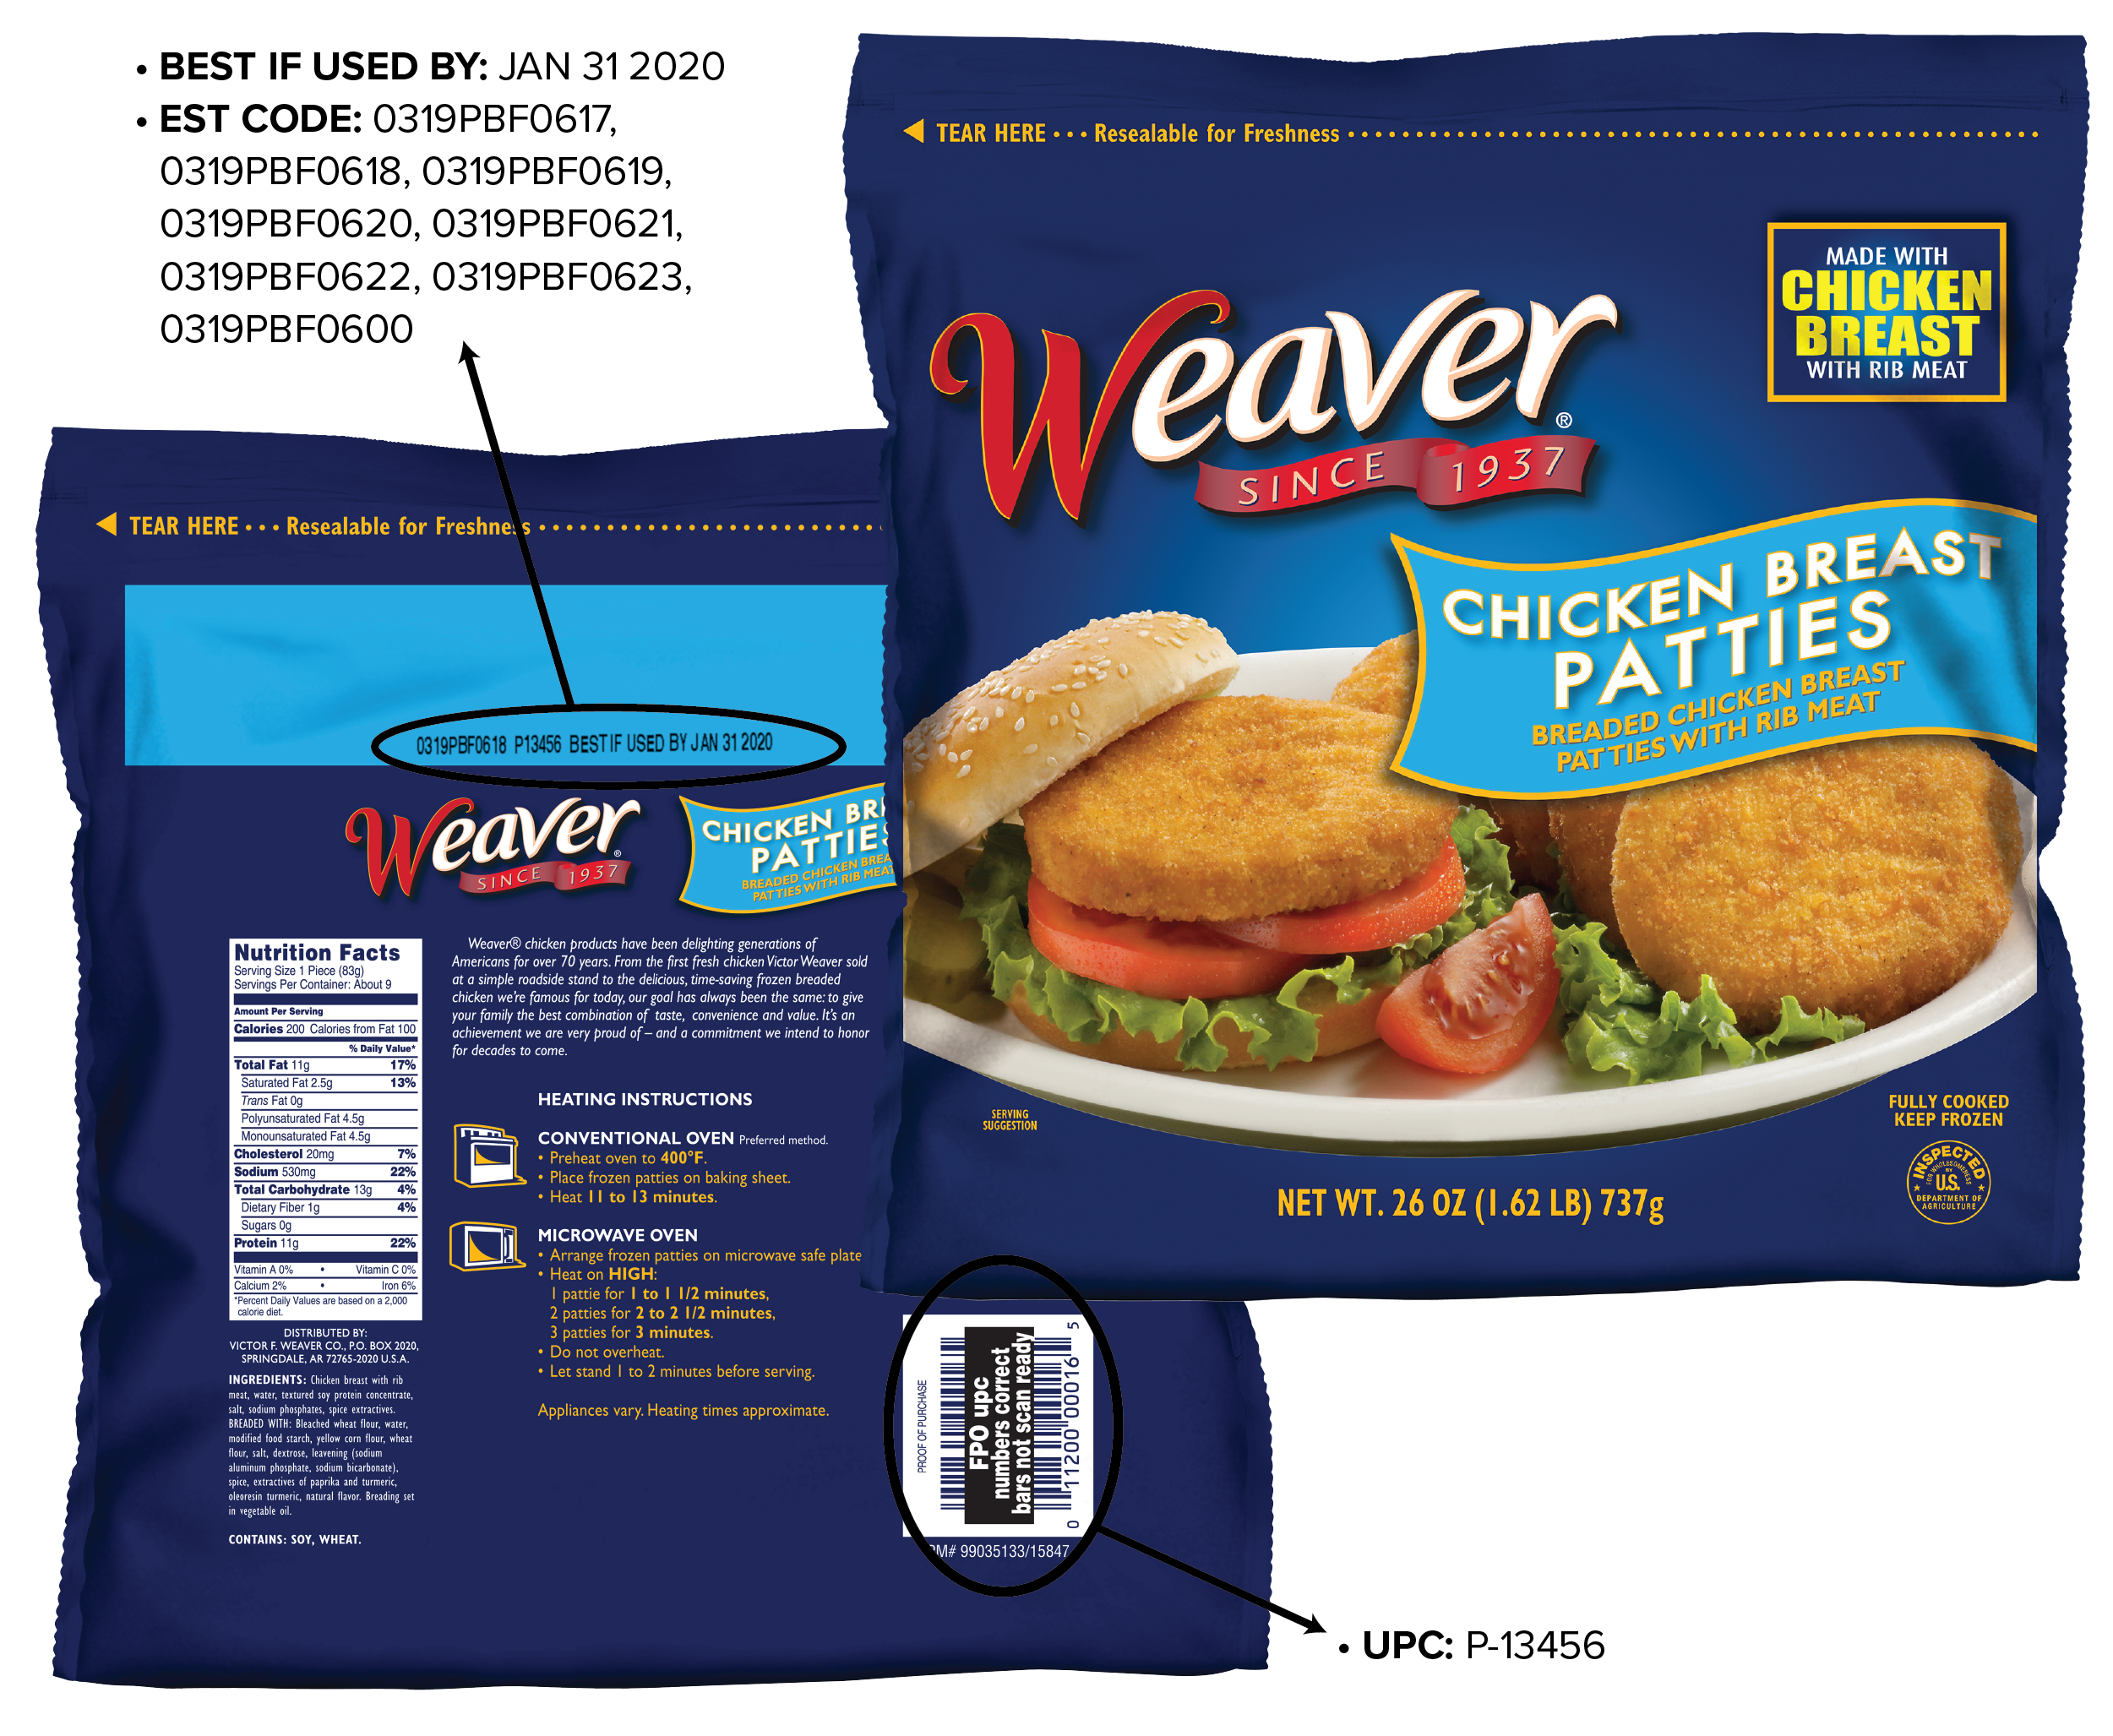 Where UPC and date code locations are on the Weaver® Brand Chicken Patties package.